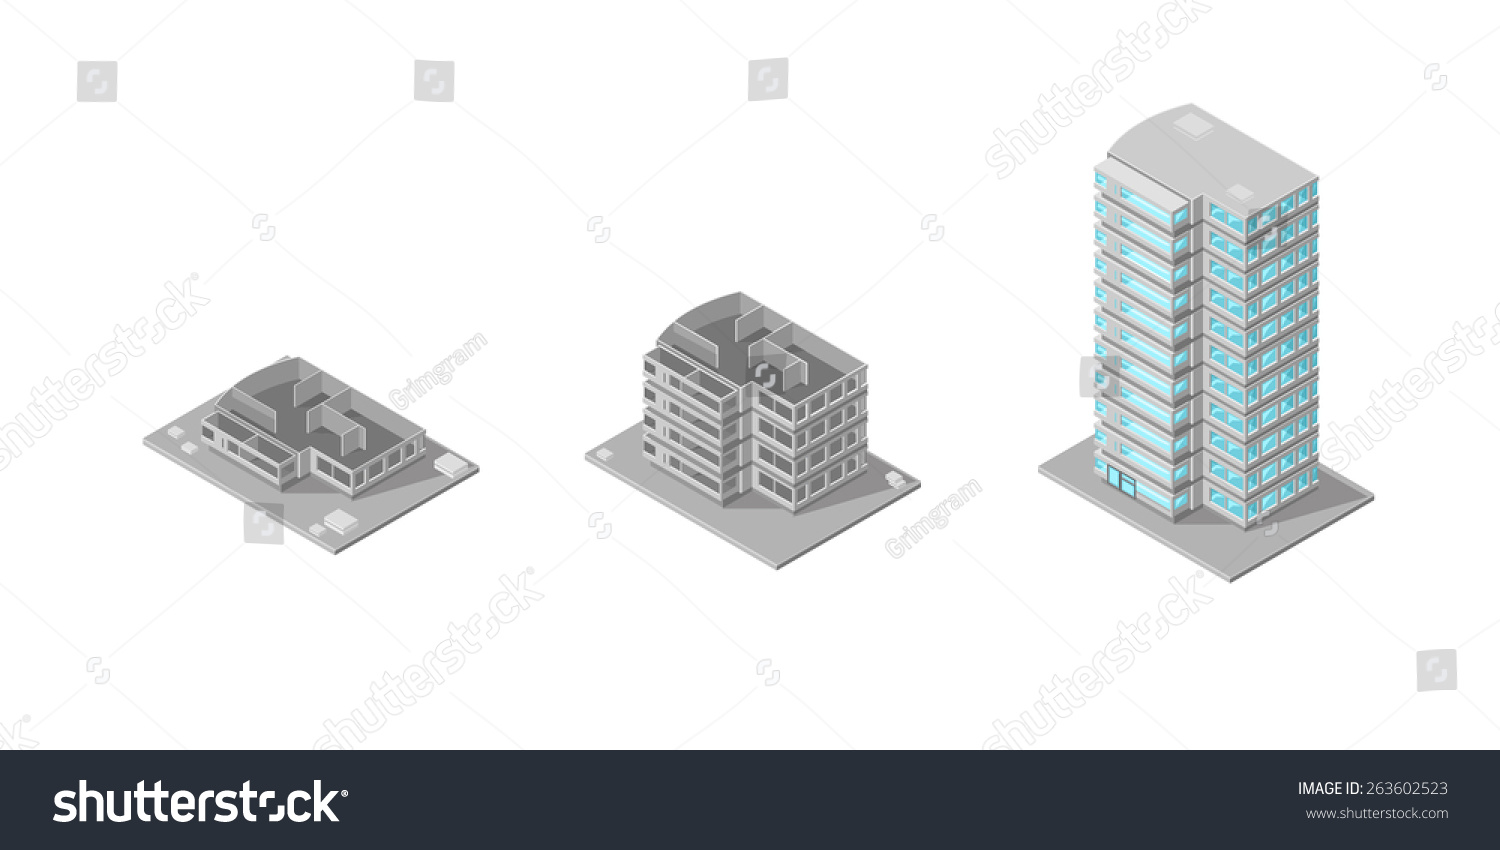 A Vector Illustration Of A Building Construction Done In Stages On A  Construction Site. Building